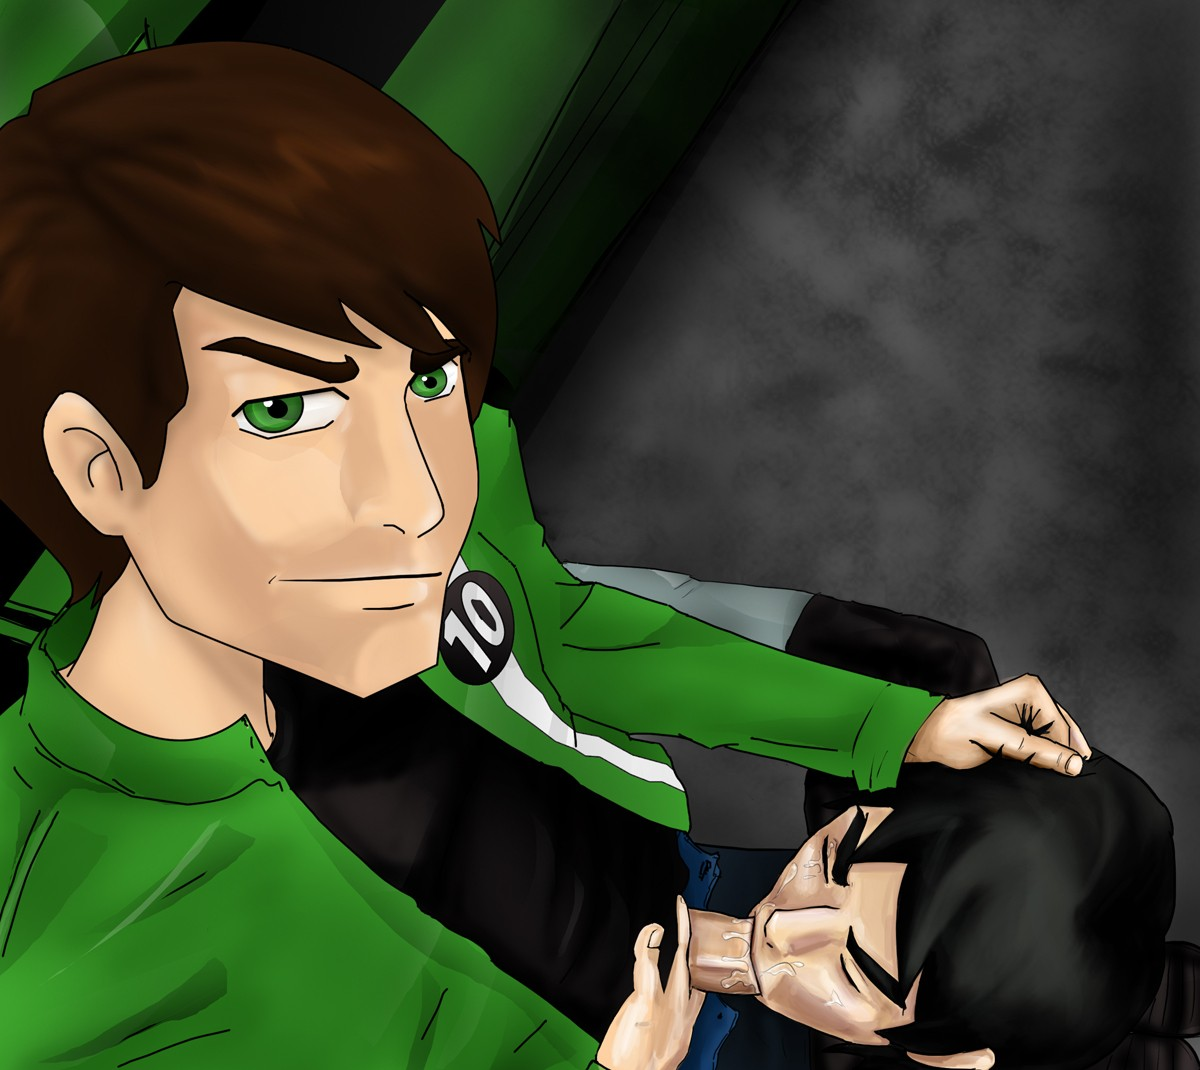 from Rohan gay ben10